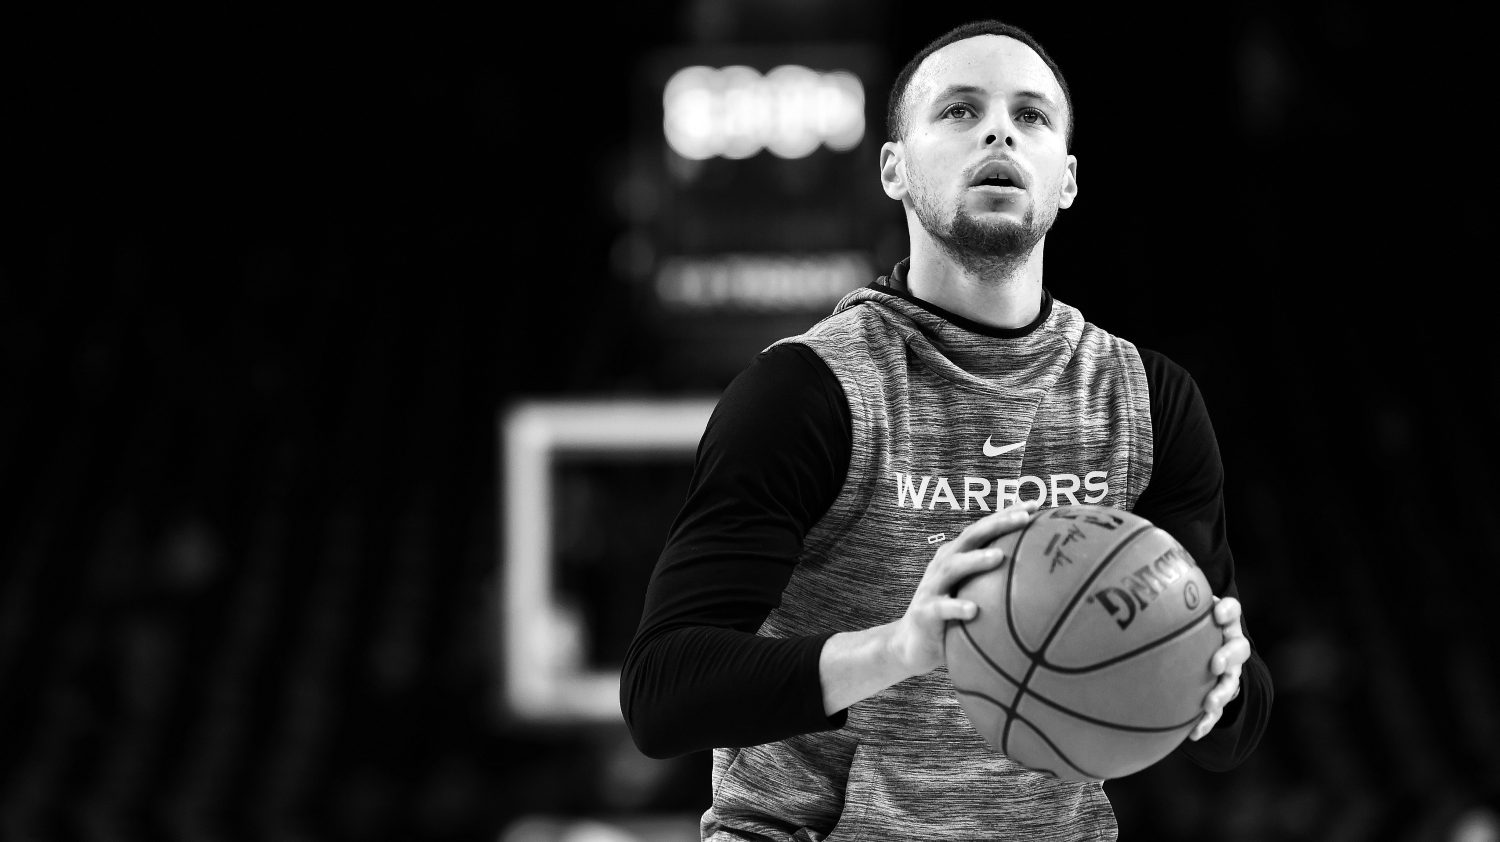 Future Hall Of Famer Stephen Curry Whom So Many Doubted Is Headed Home For All Star Game